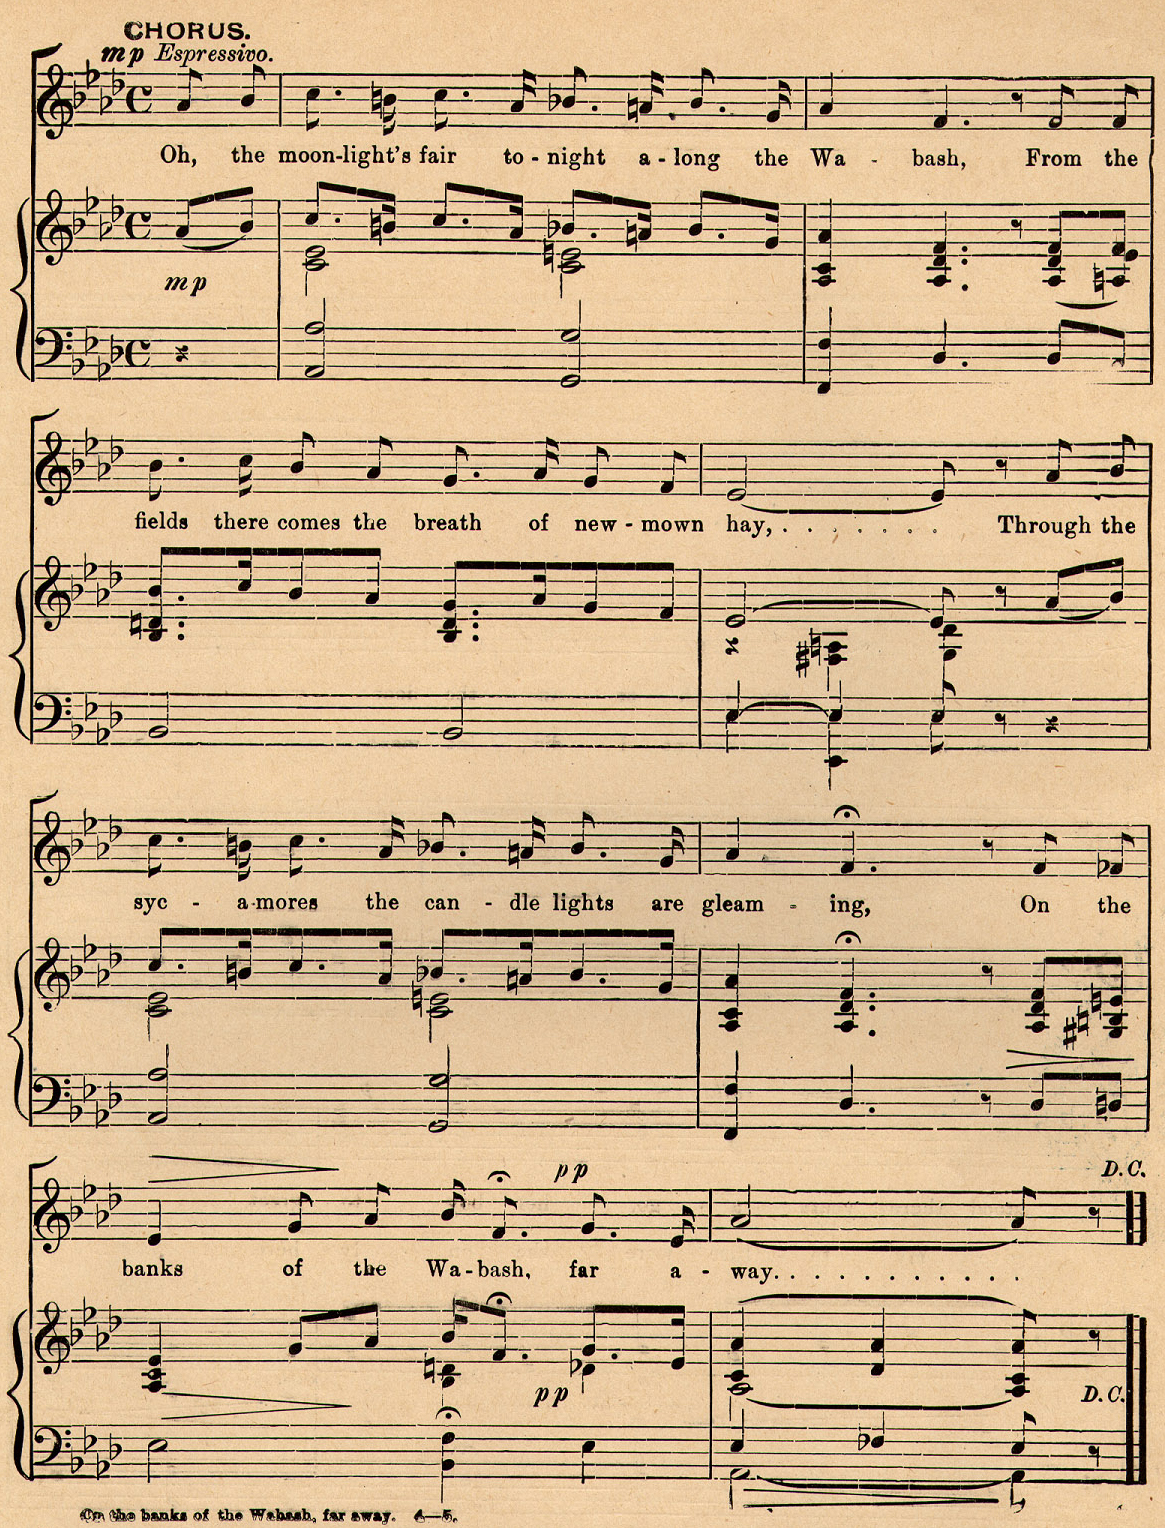 File:On the Banks of the Wabash, Far Away, chorus sheet music.jpg ...